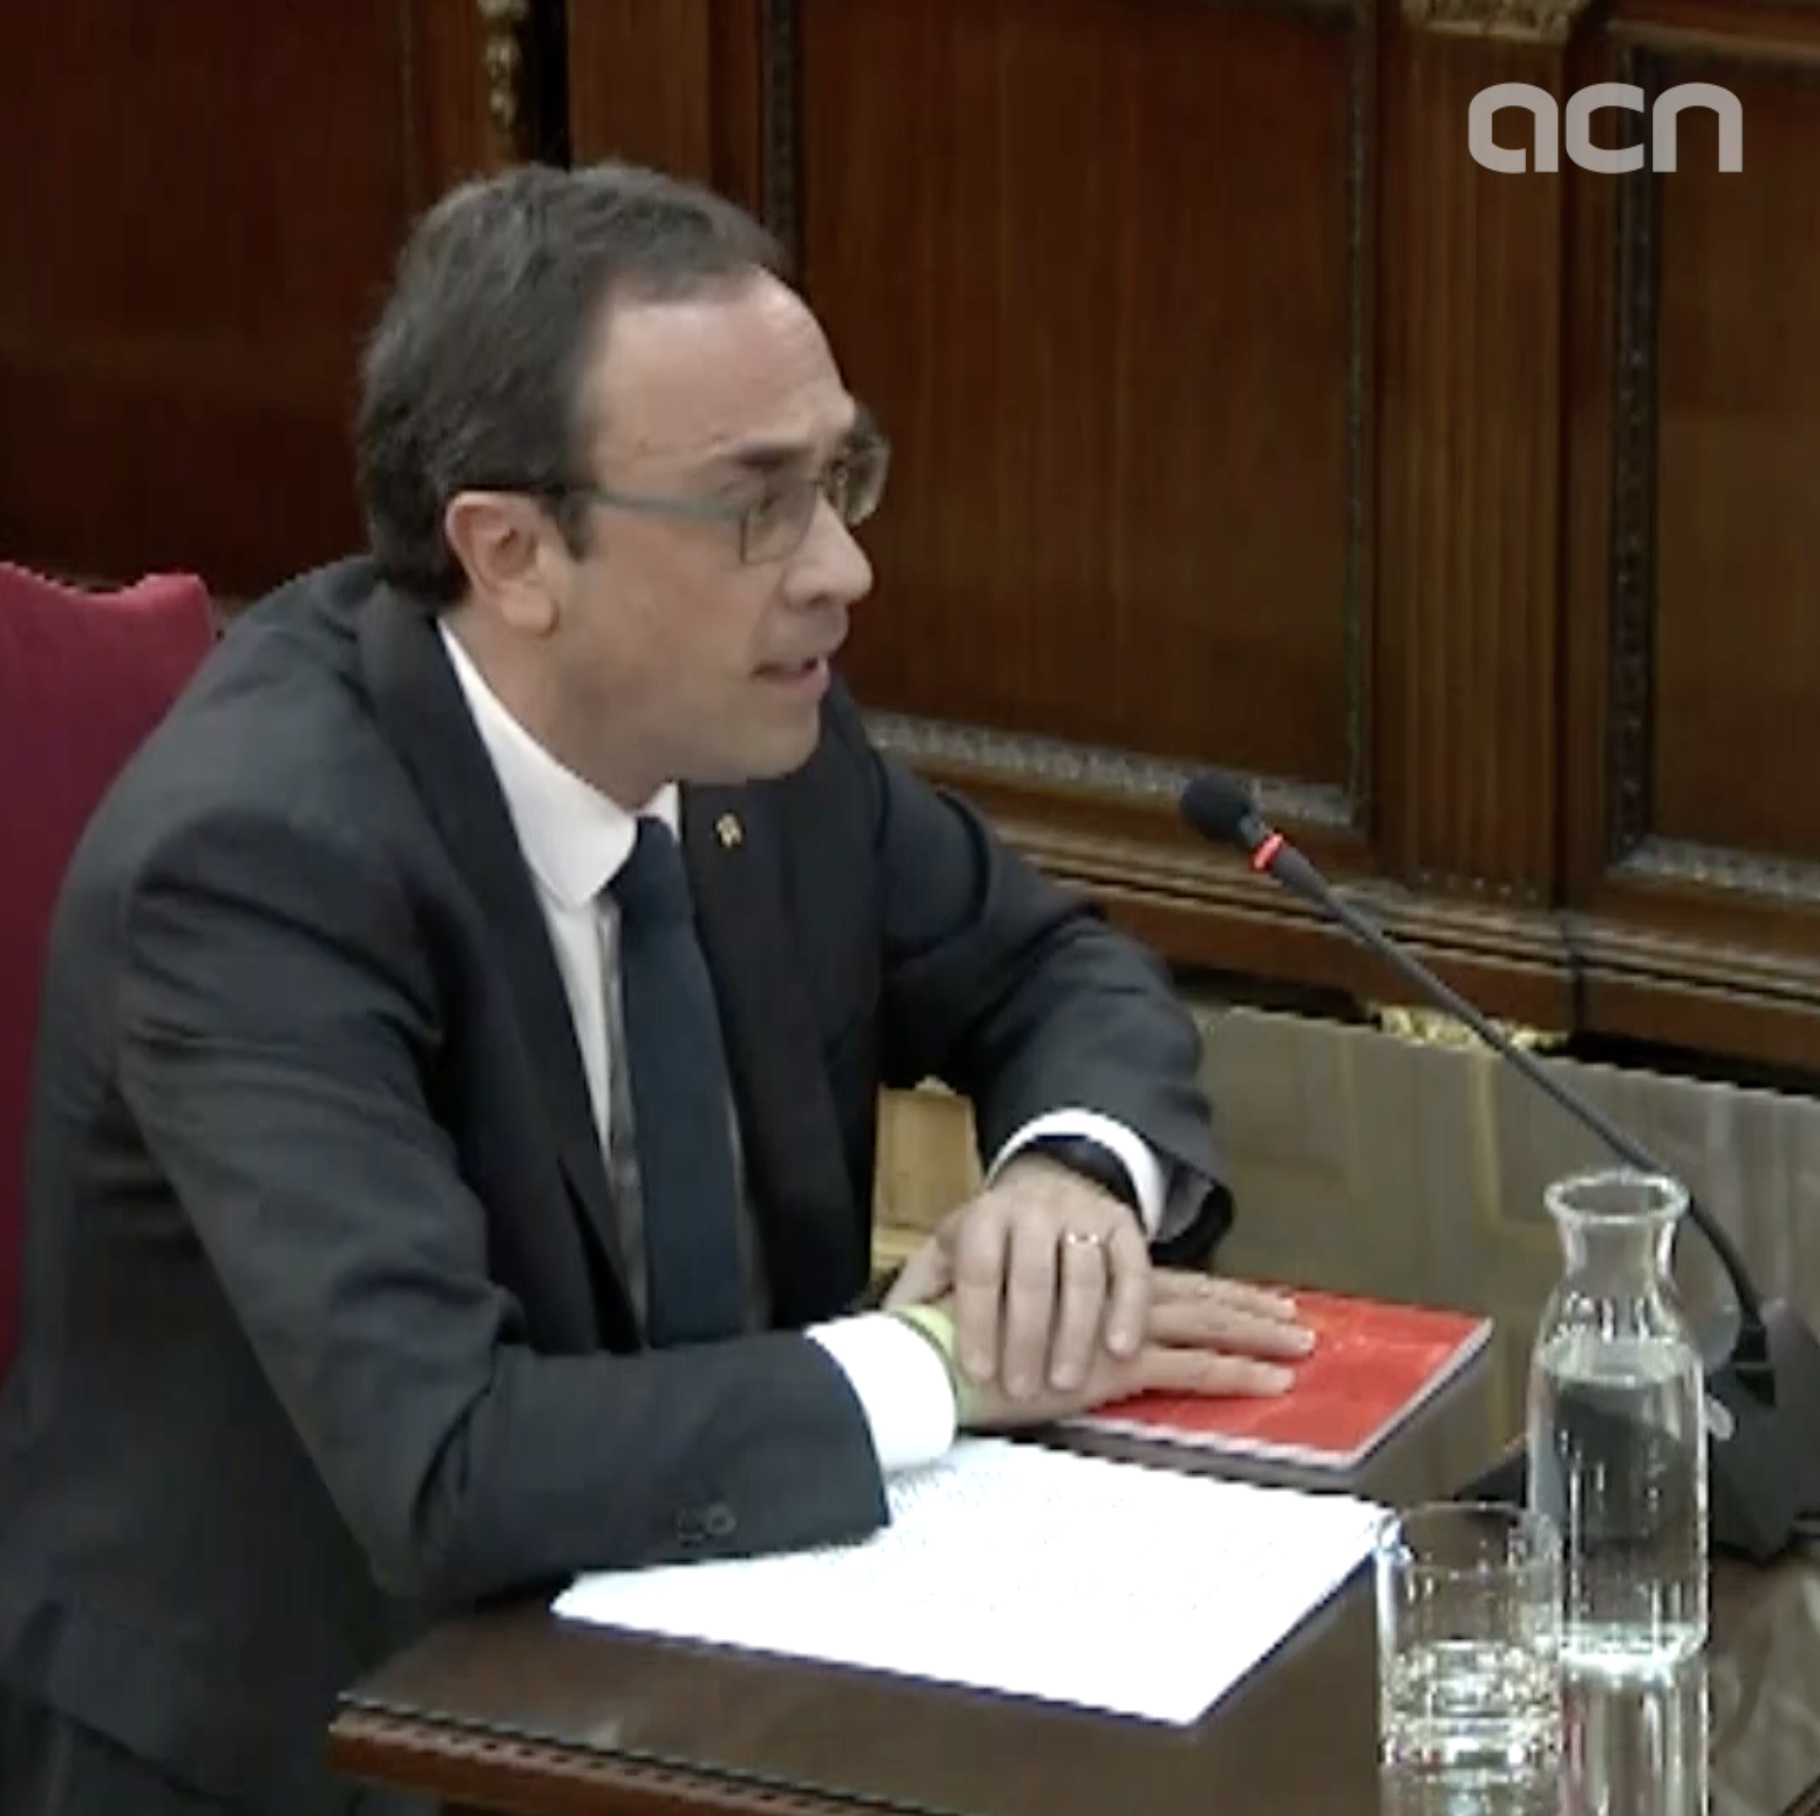 'Catalan language is seen as a threat' says former territory minister Josep Rull